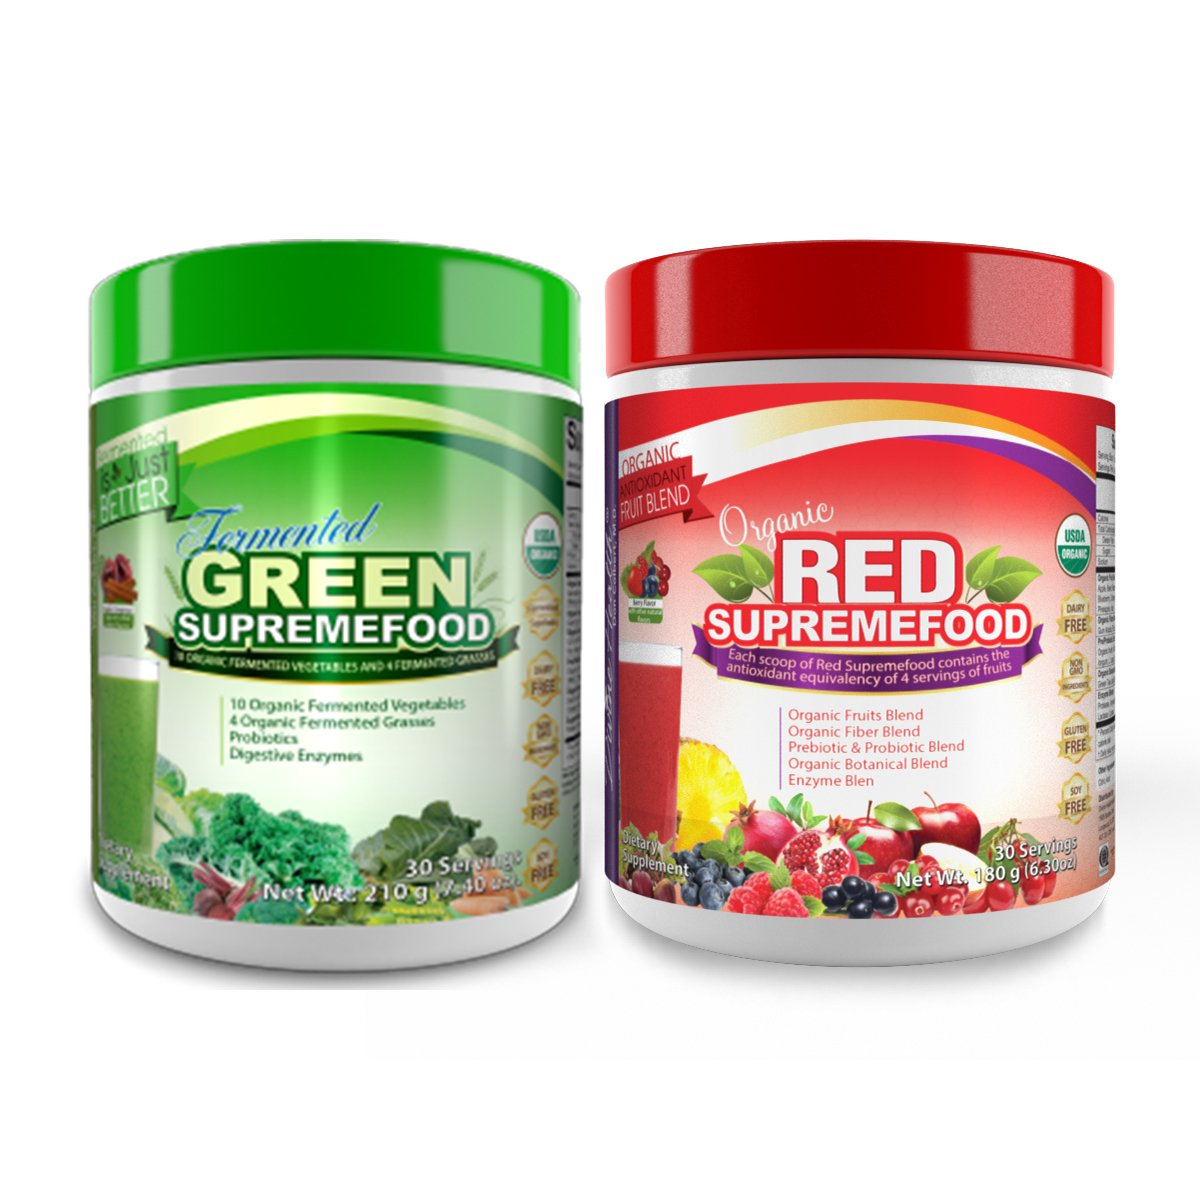 Dr.Colbert's Organic Supremefood Twin Pack - One Fermented Green Supremefood Apple Cinnamon Flavored Veggie Blend, (30 Day Supply) + One Organic Red Supremefood with Probiotics (30 Day Supply)